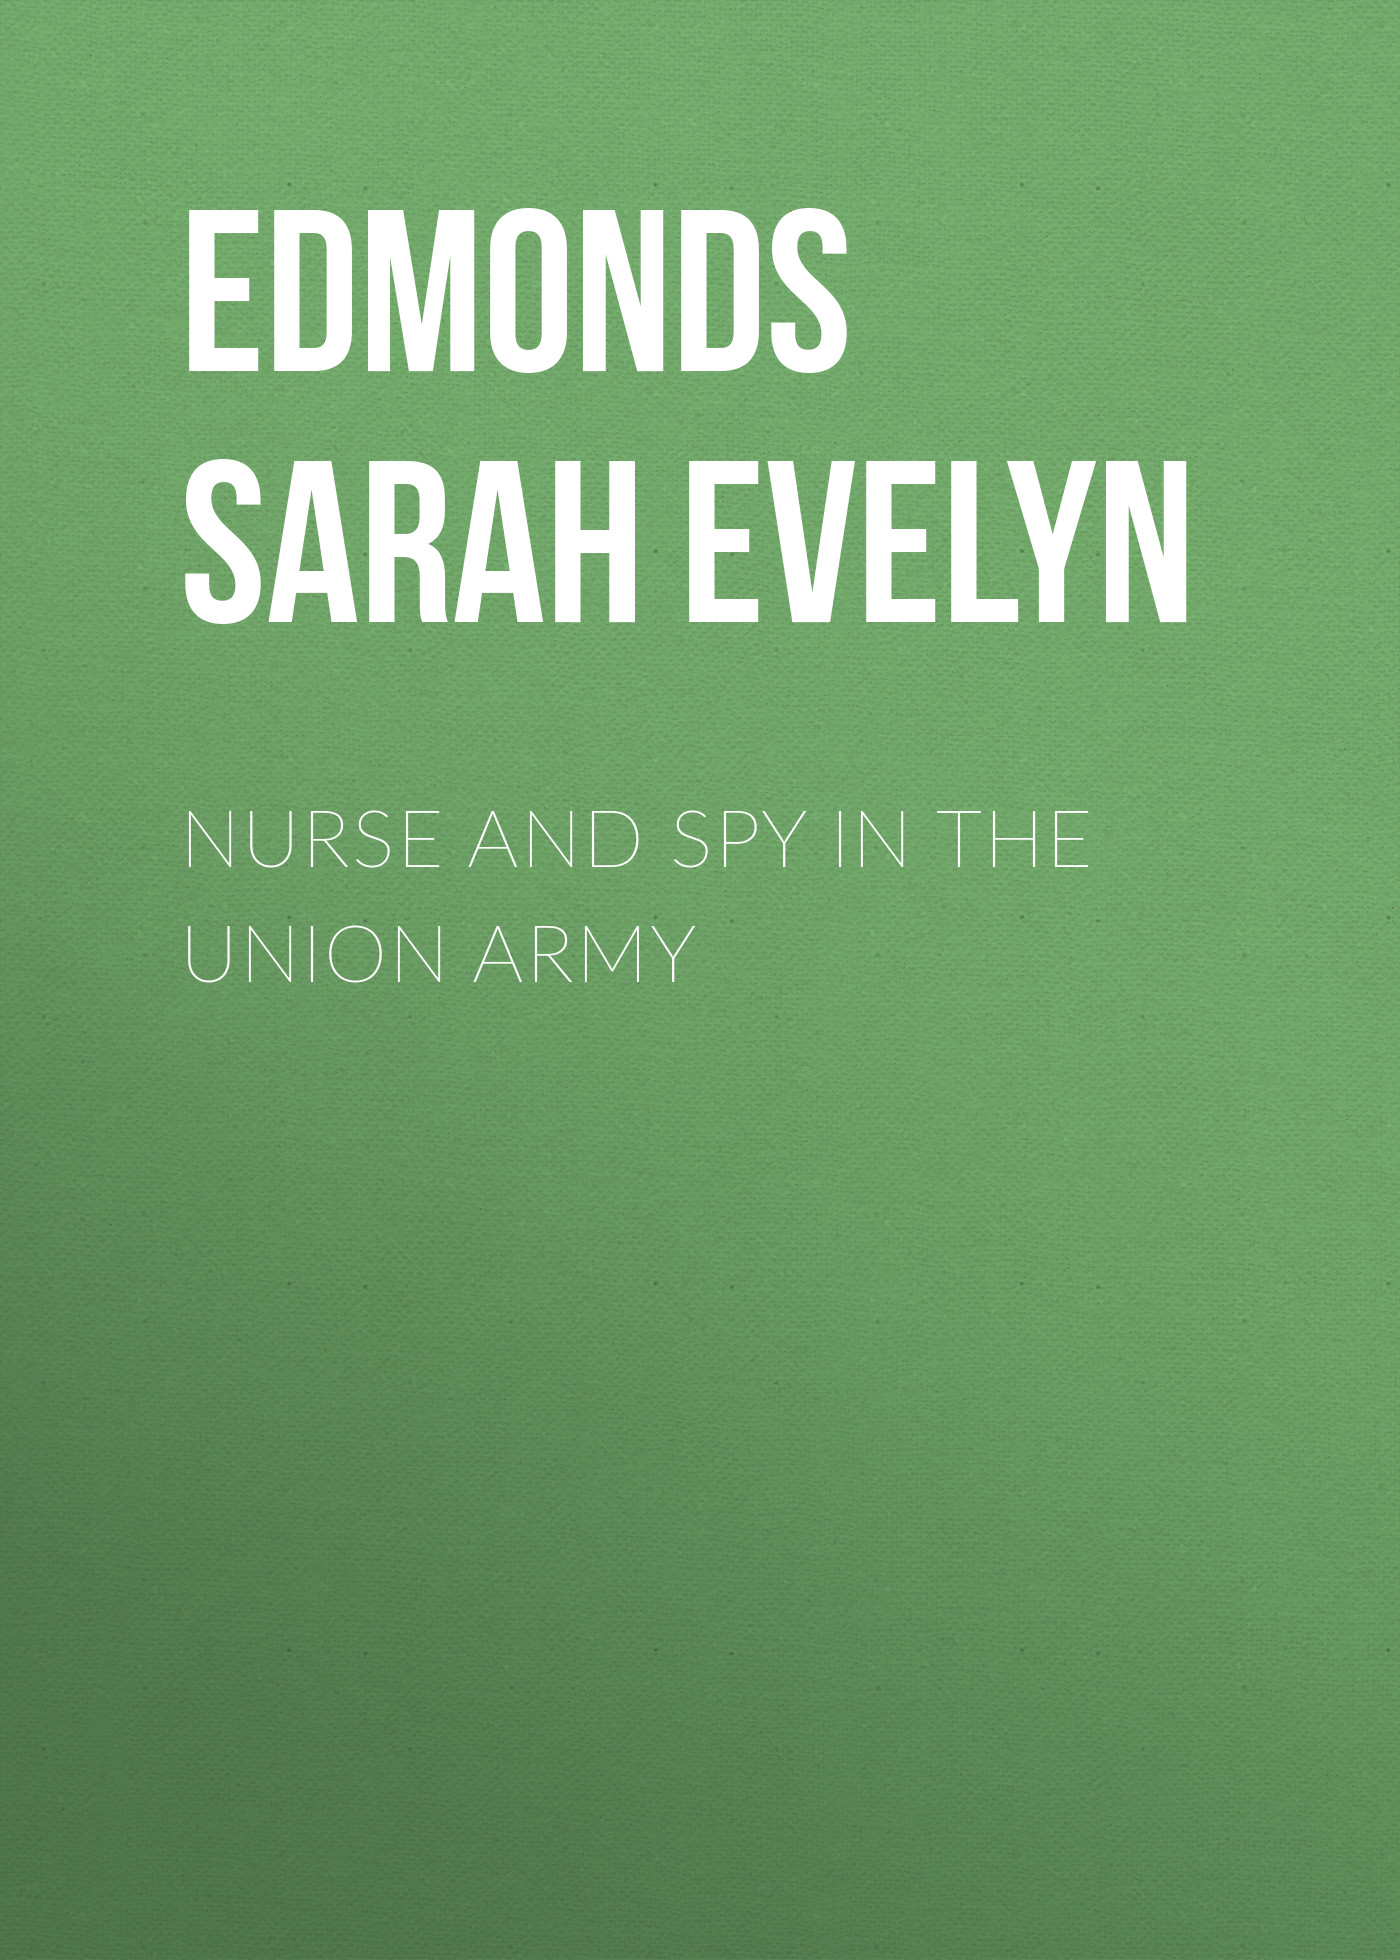 Edmonds Sarah Emma Evelyn Nurse and Spy in the Union Army красное боди emma xxl 3xl